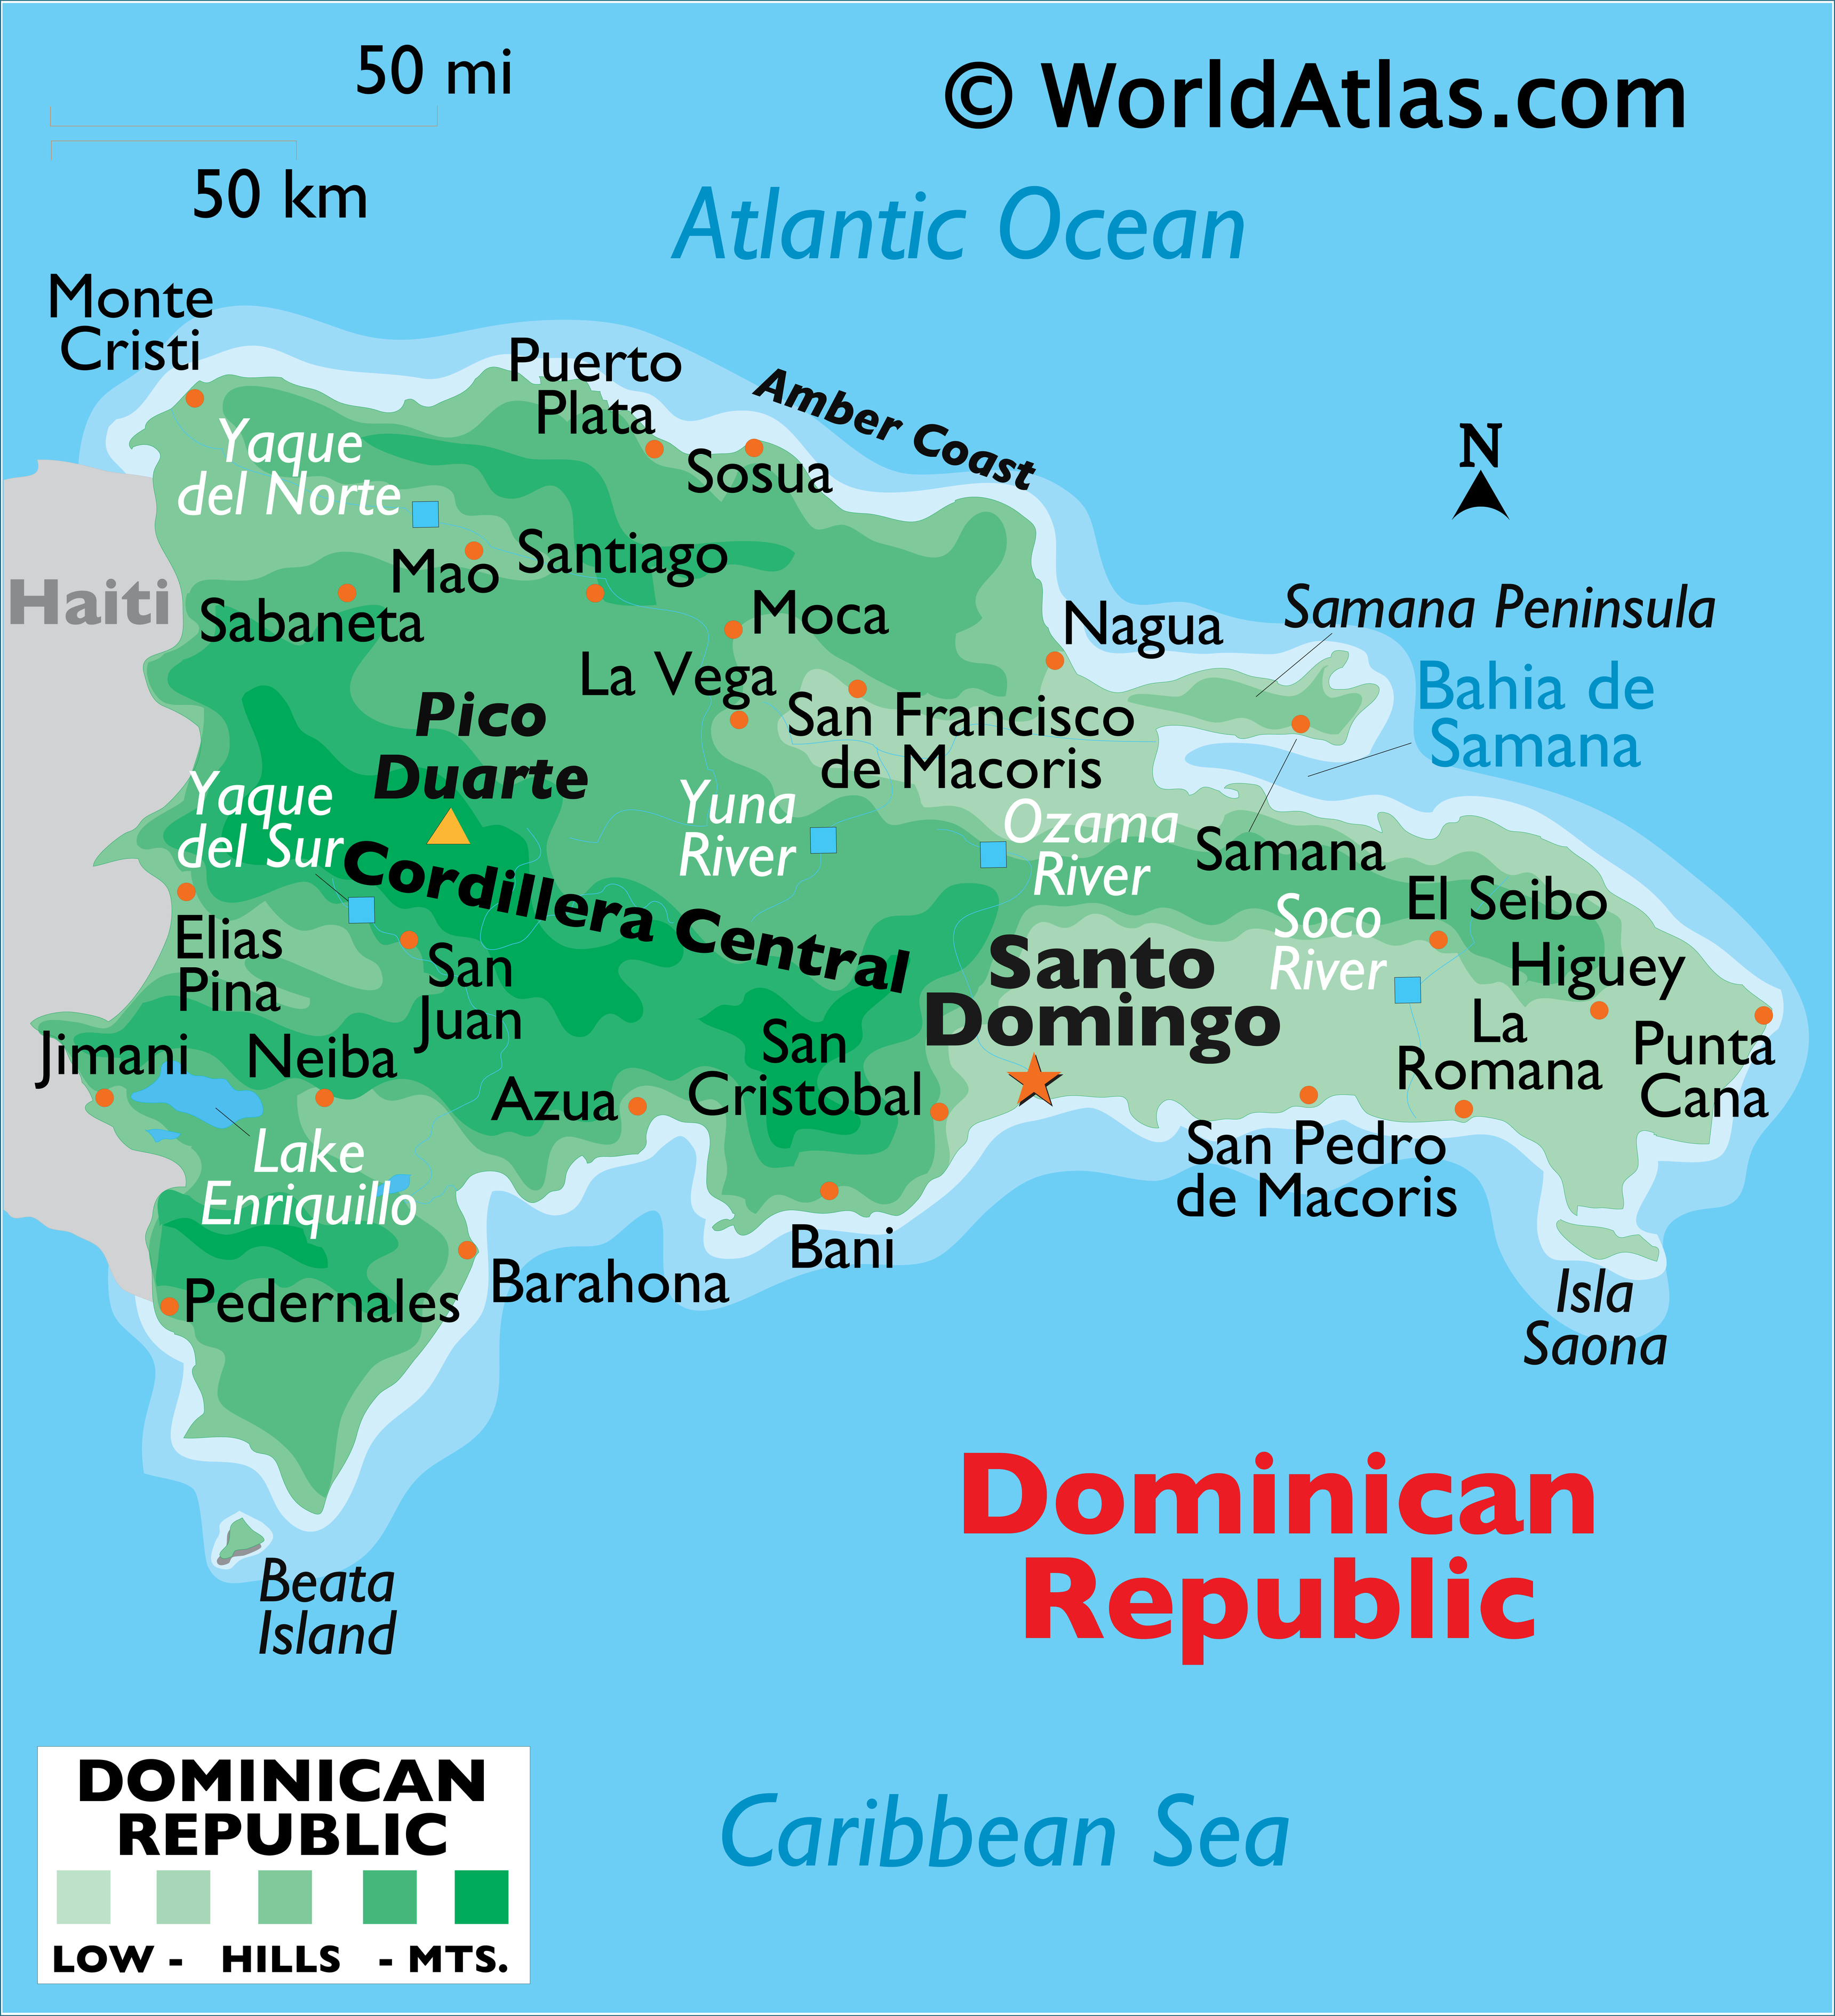 Physical Map of the Dominican Republic showing relief, islands, rivers, mountains, lakes, important cities, and more.